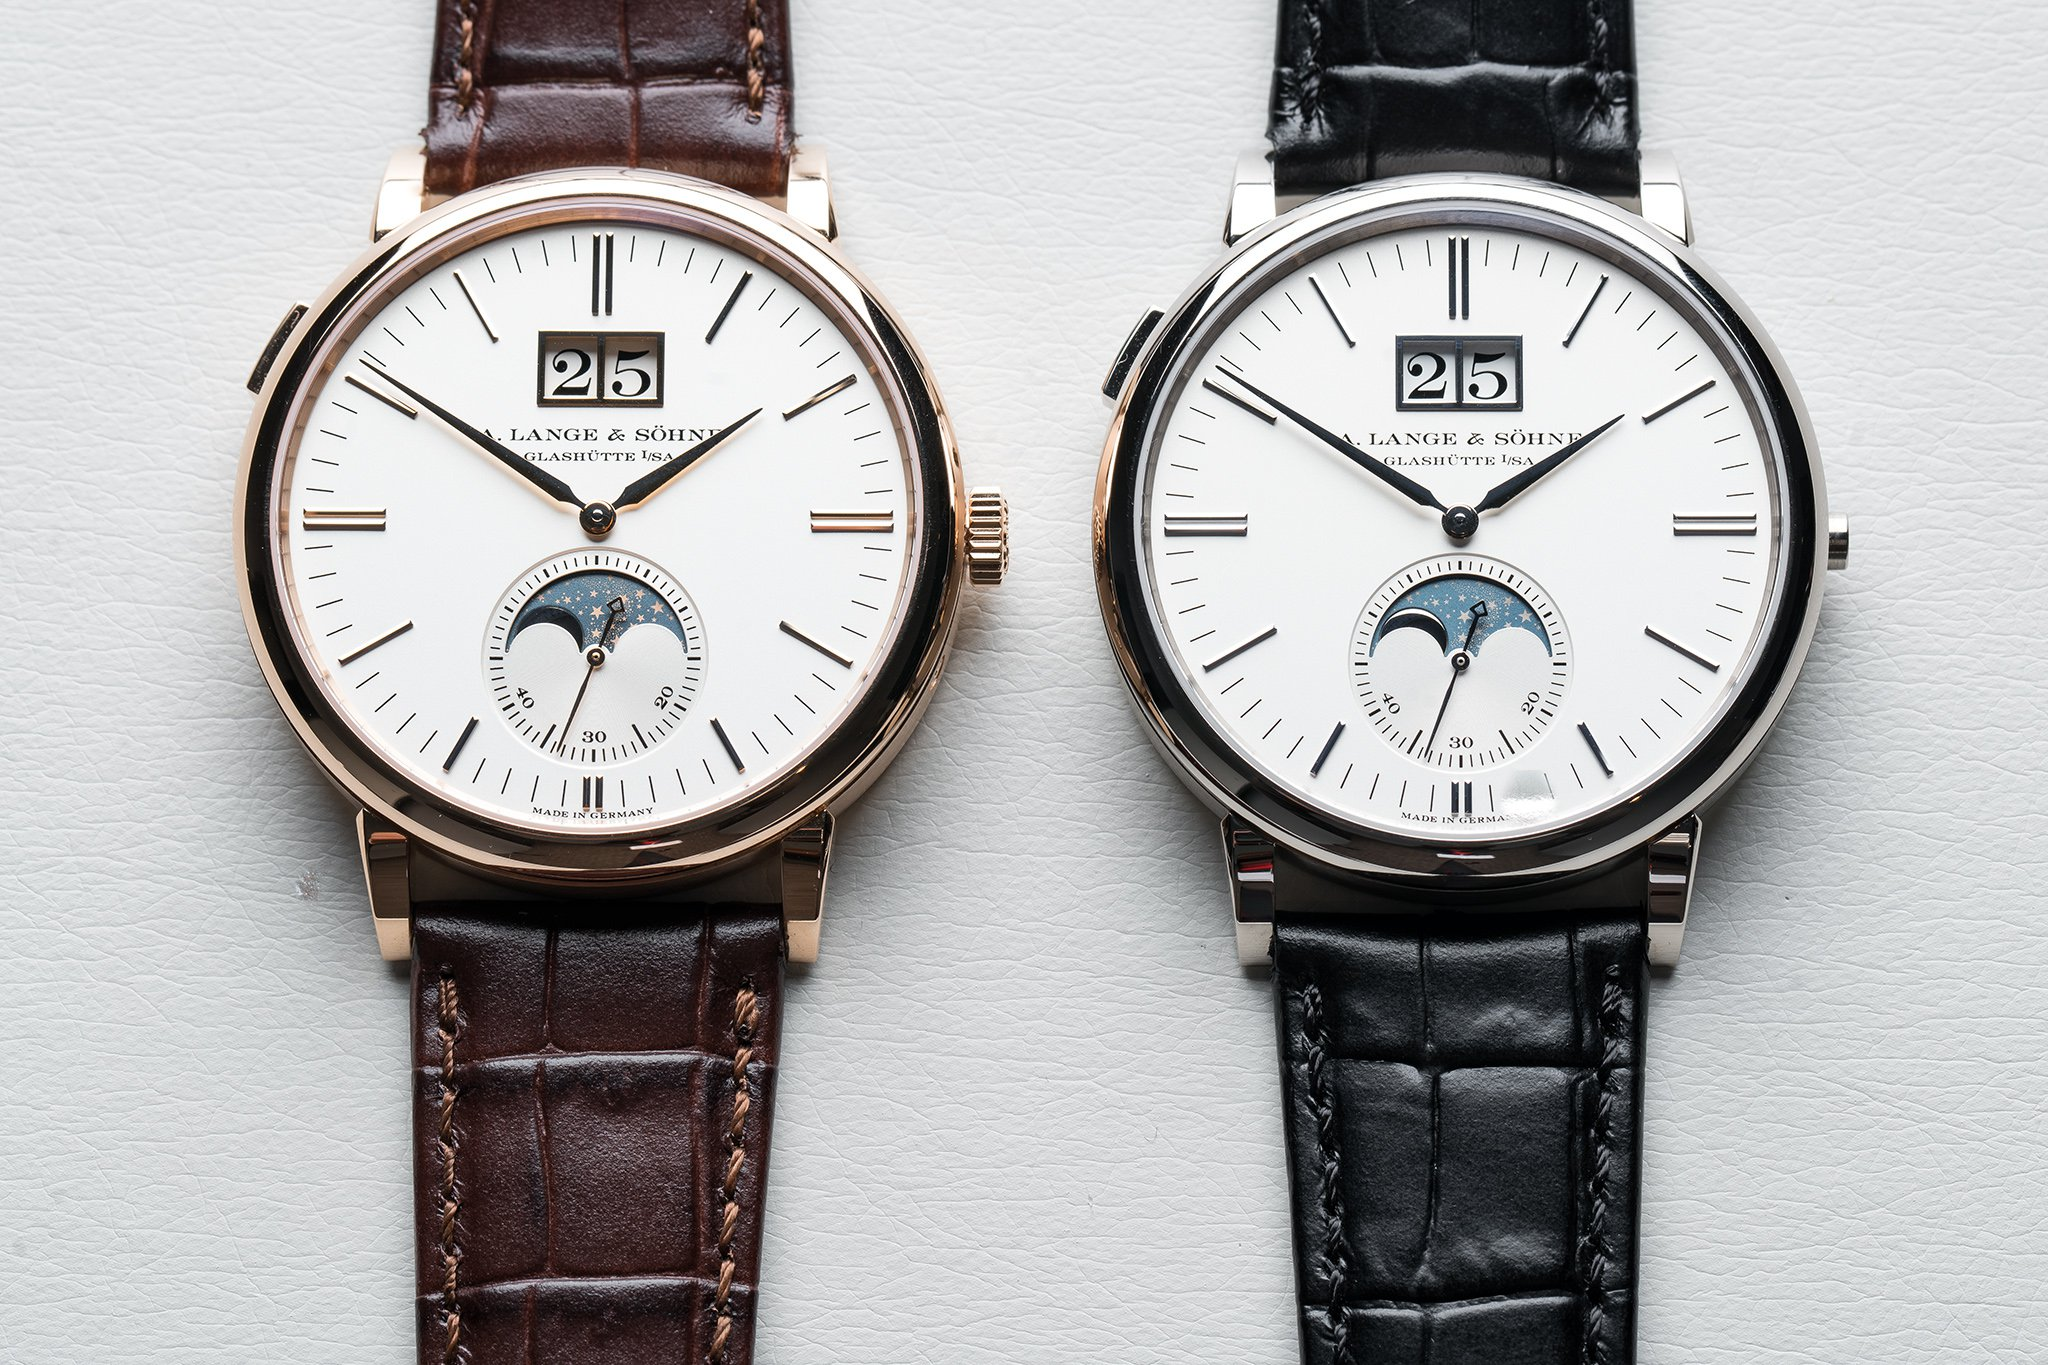 Lange & Sohne Saxonia Moon Phase Replica Watch